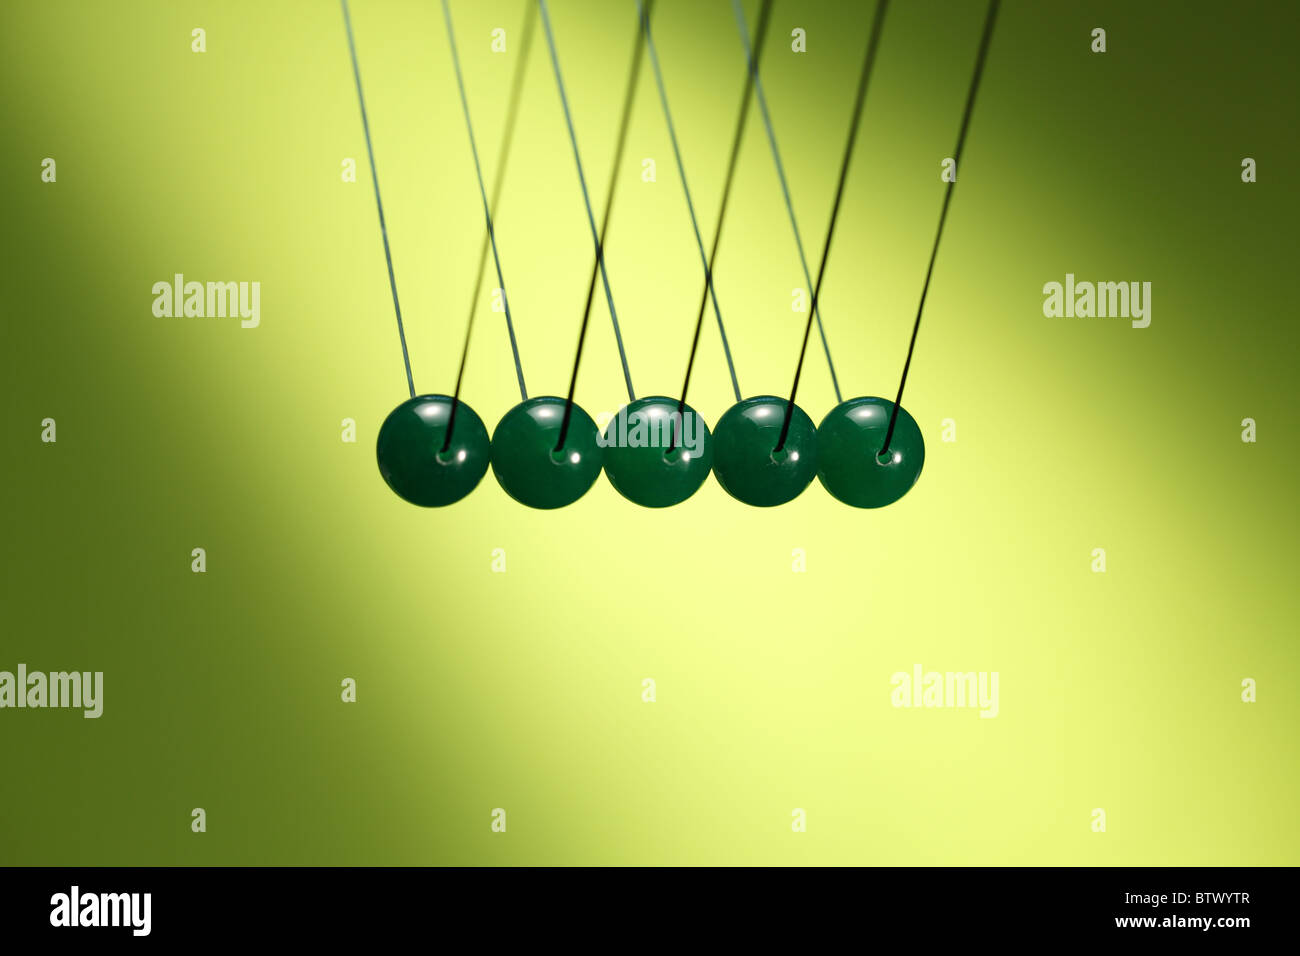 Five green marbles in row hanging from string. Illustrates Newton's cradle, a device that demonstrates conservation - Stock Image